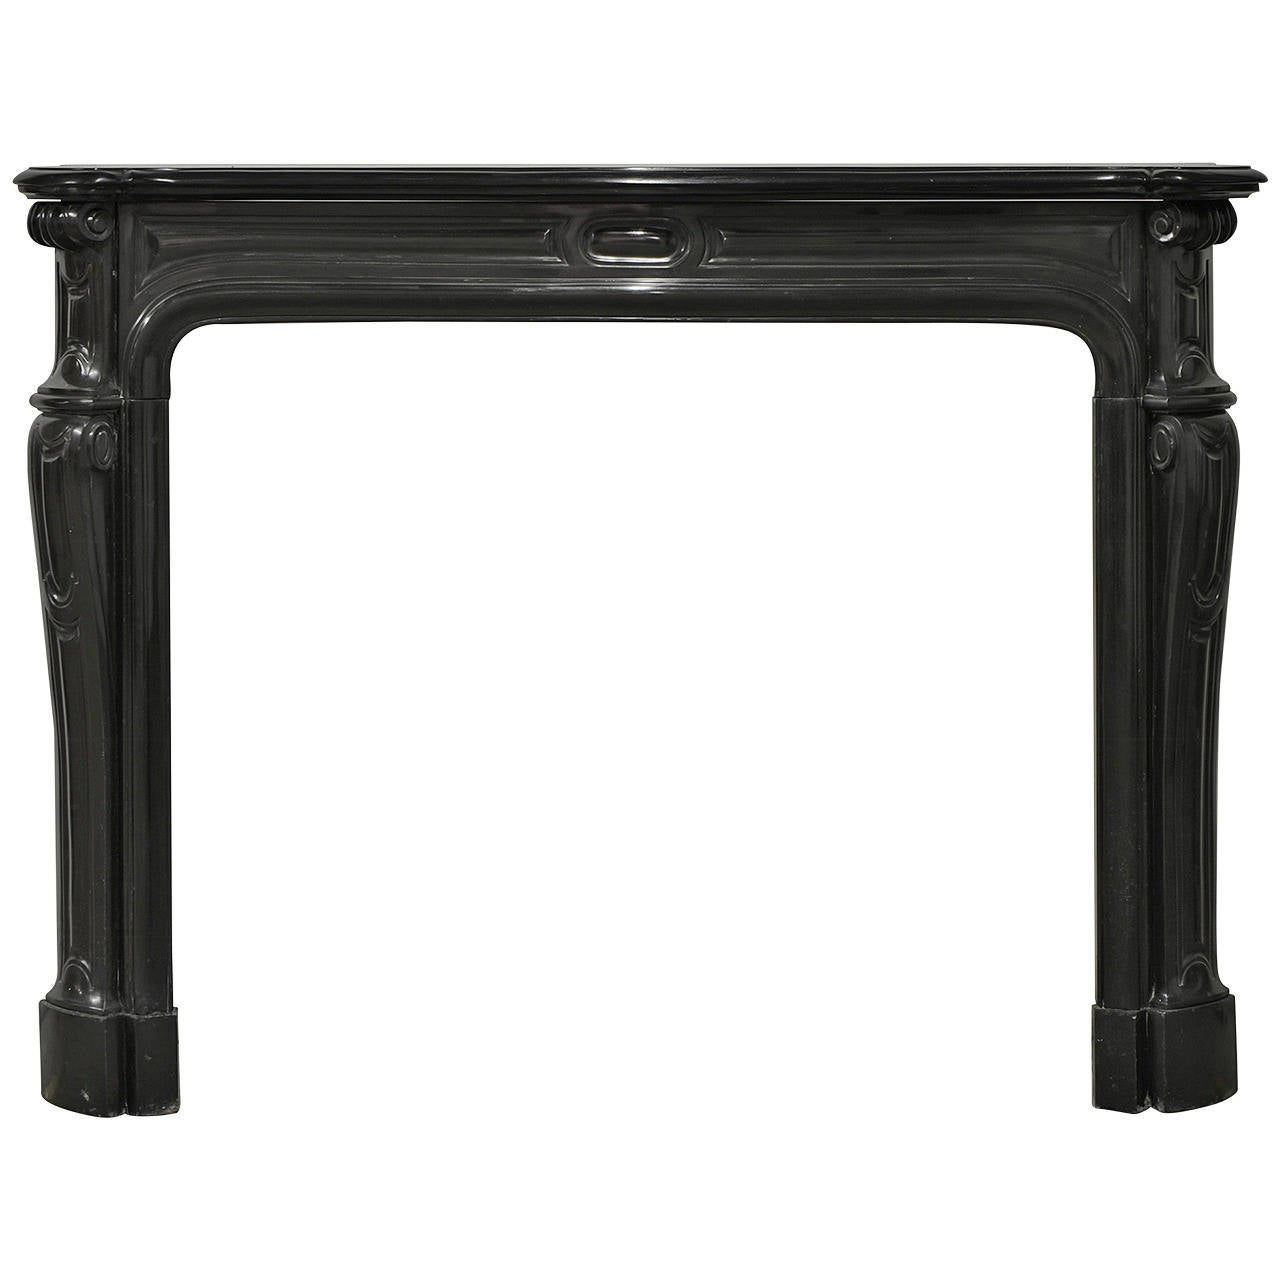 Antique 19th Century Black Marble Louis Xv Fireplace Mantel At 1stdibs